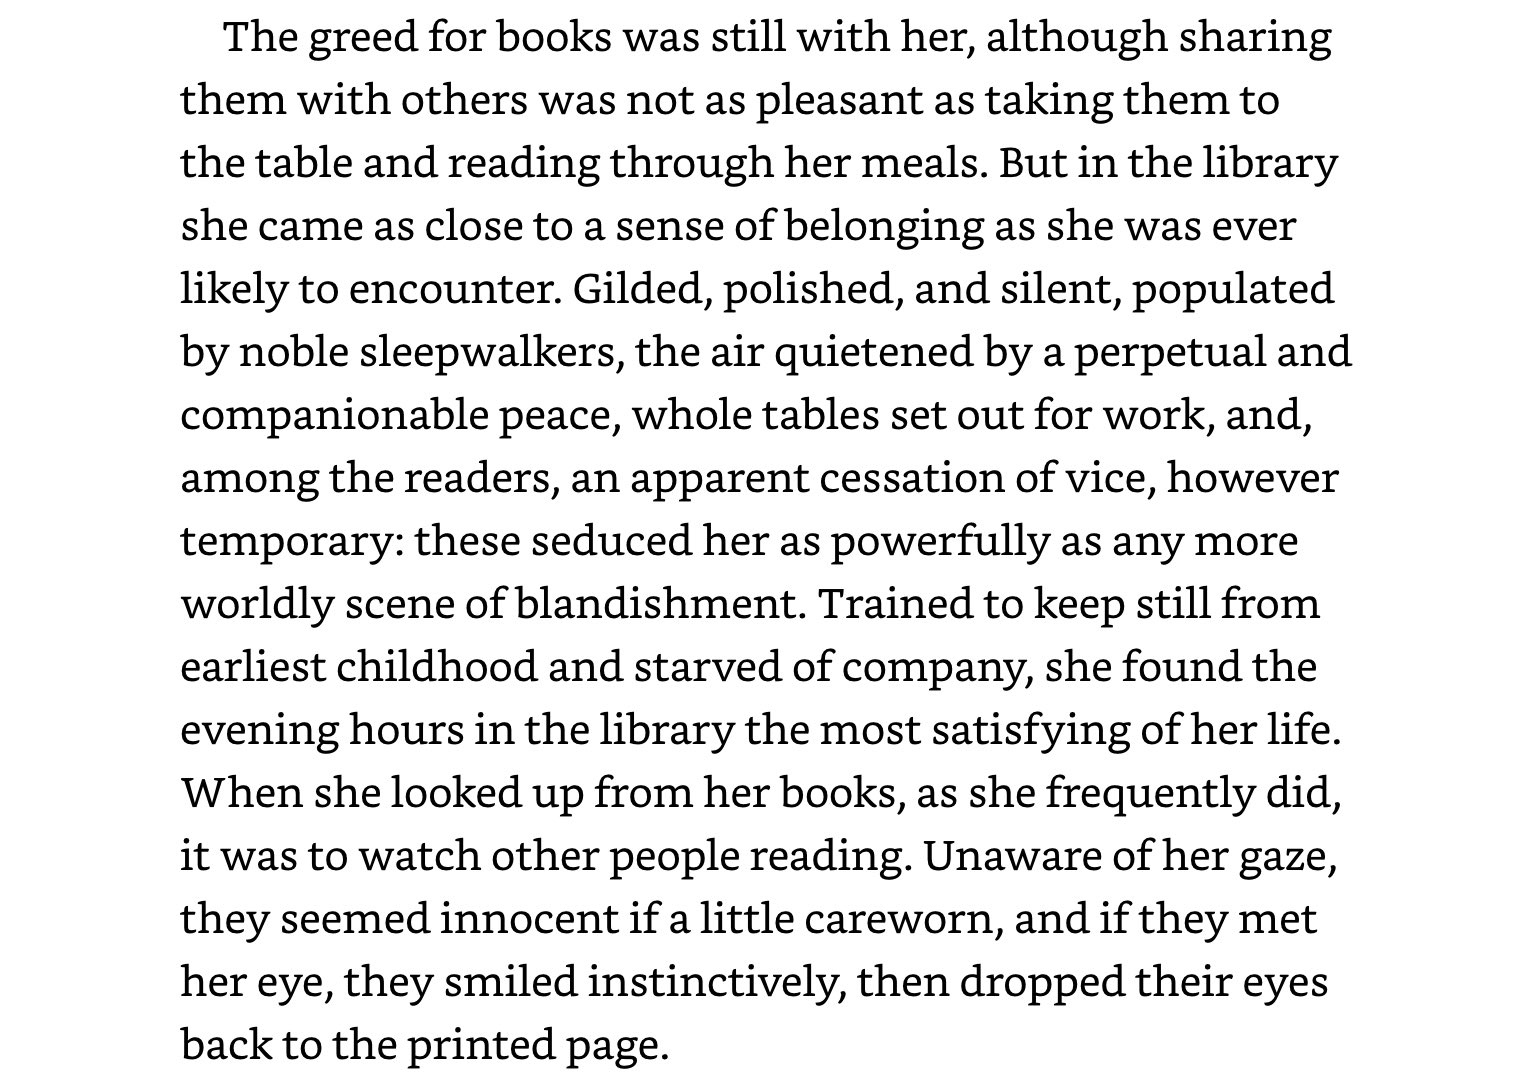 This beautiful passage from 'A Start in Life' by Anita Brookner made me miss libraries: https://t.co/GfXSavpAHG